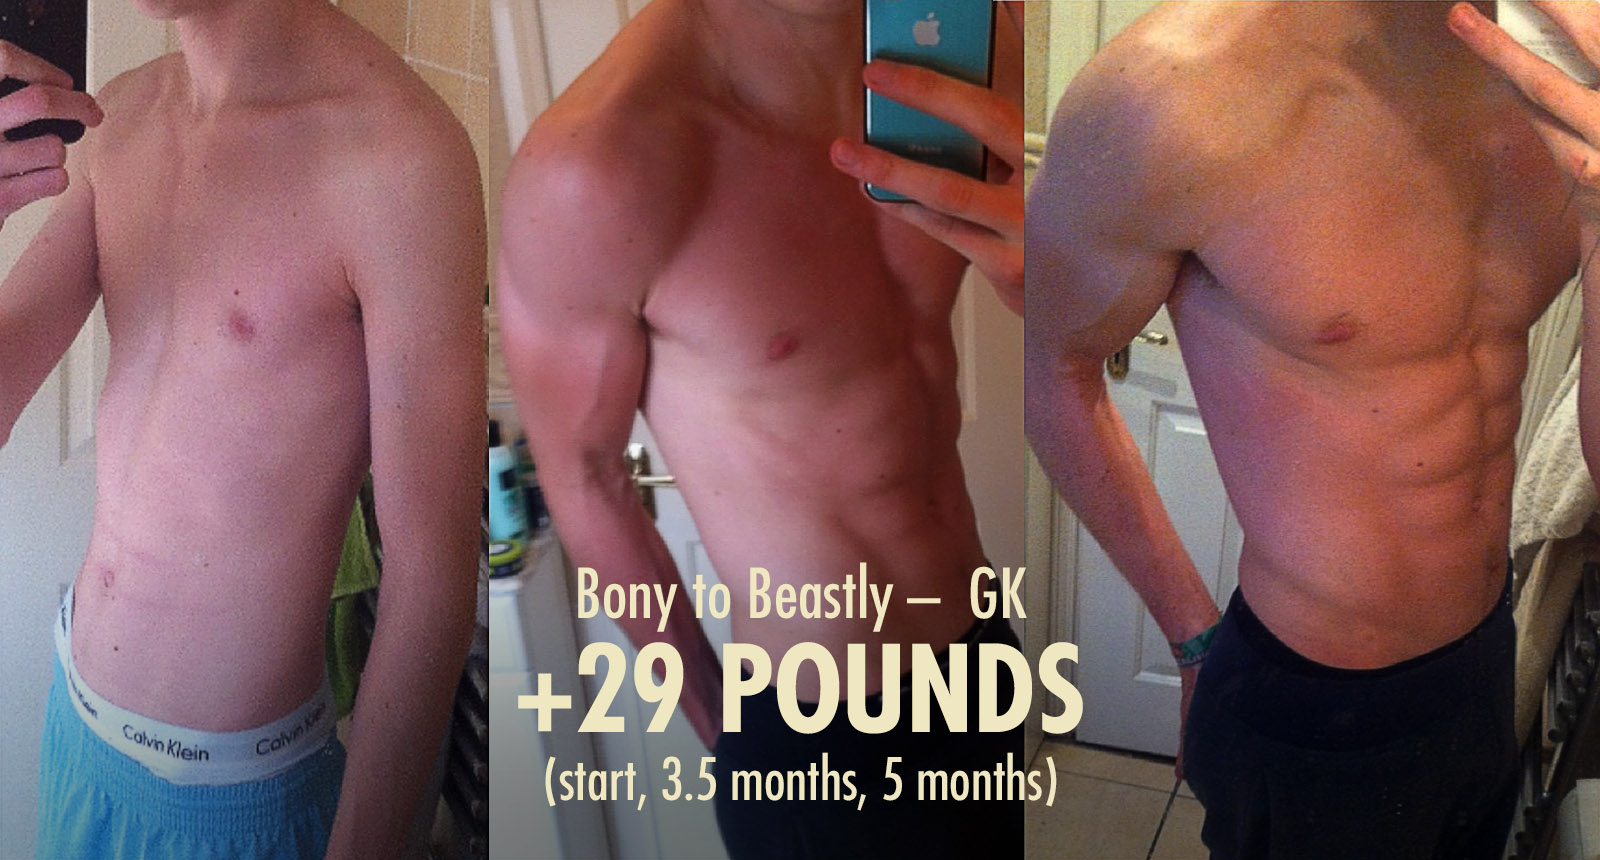 Bony To Beastly The Skinny On Abs